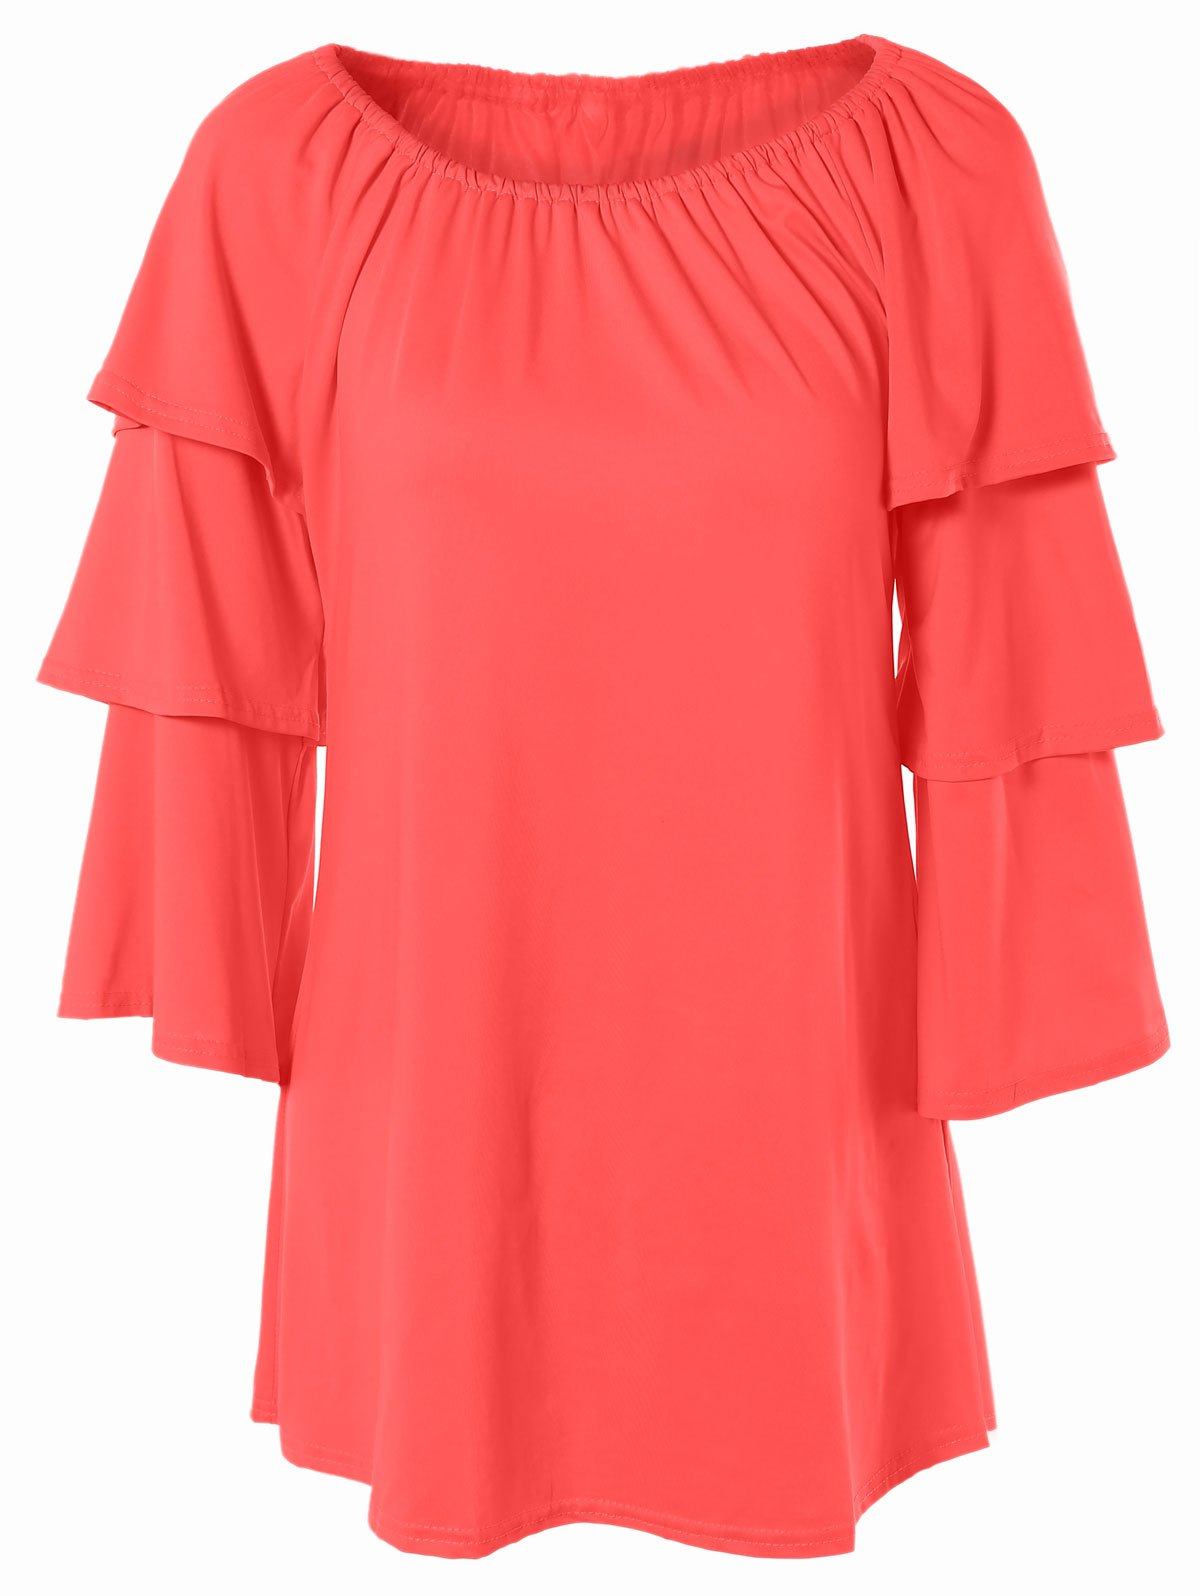 Scoop Neck Tiered Sleeve T-Shirt - WATERMELON RED S